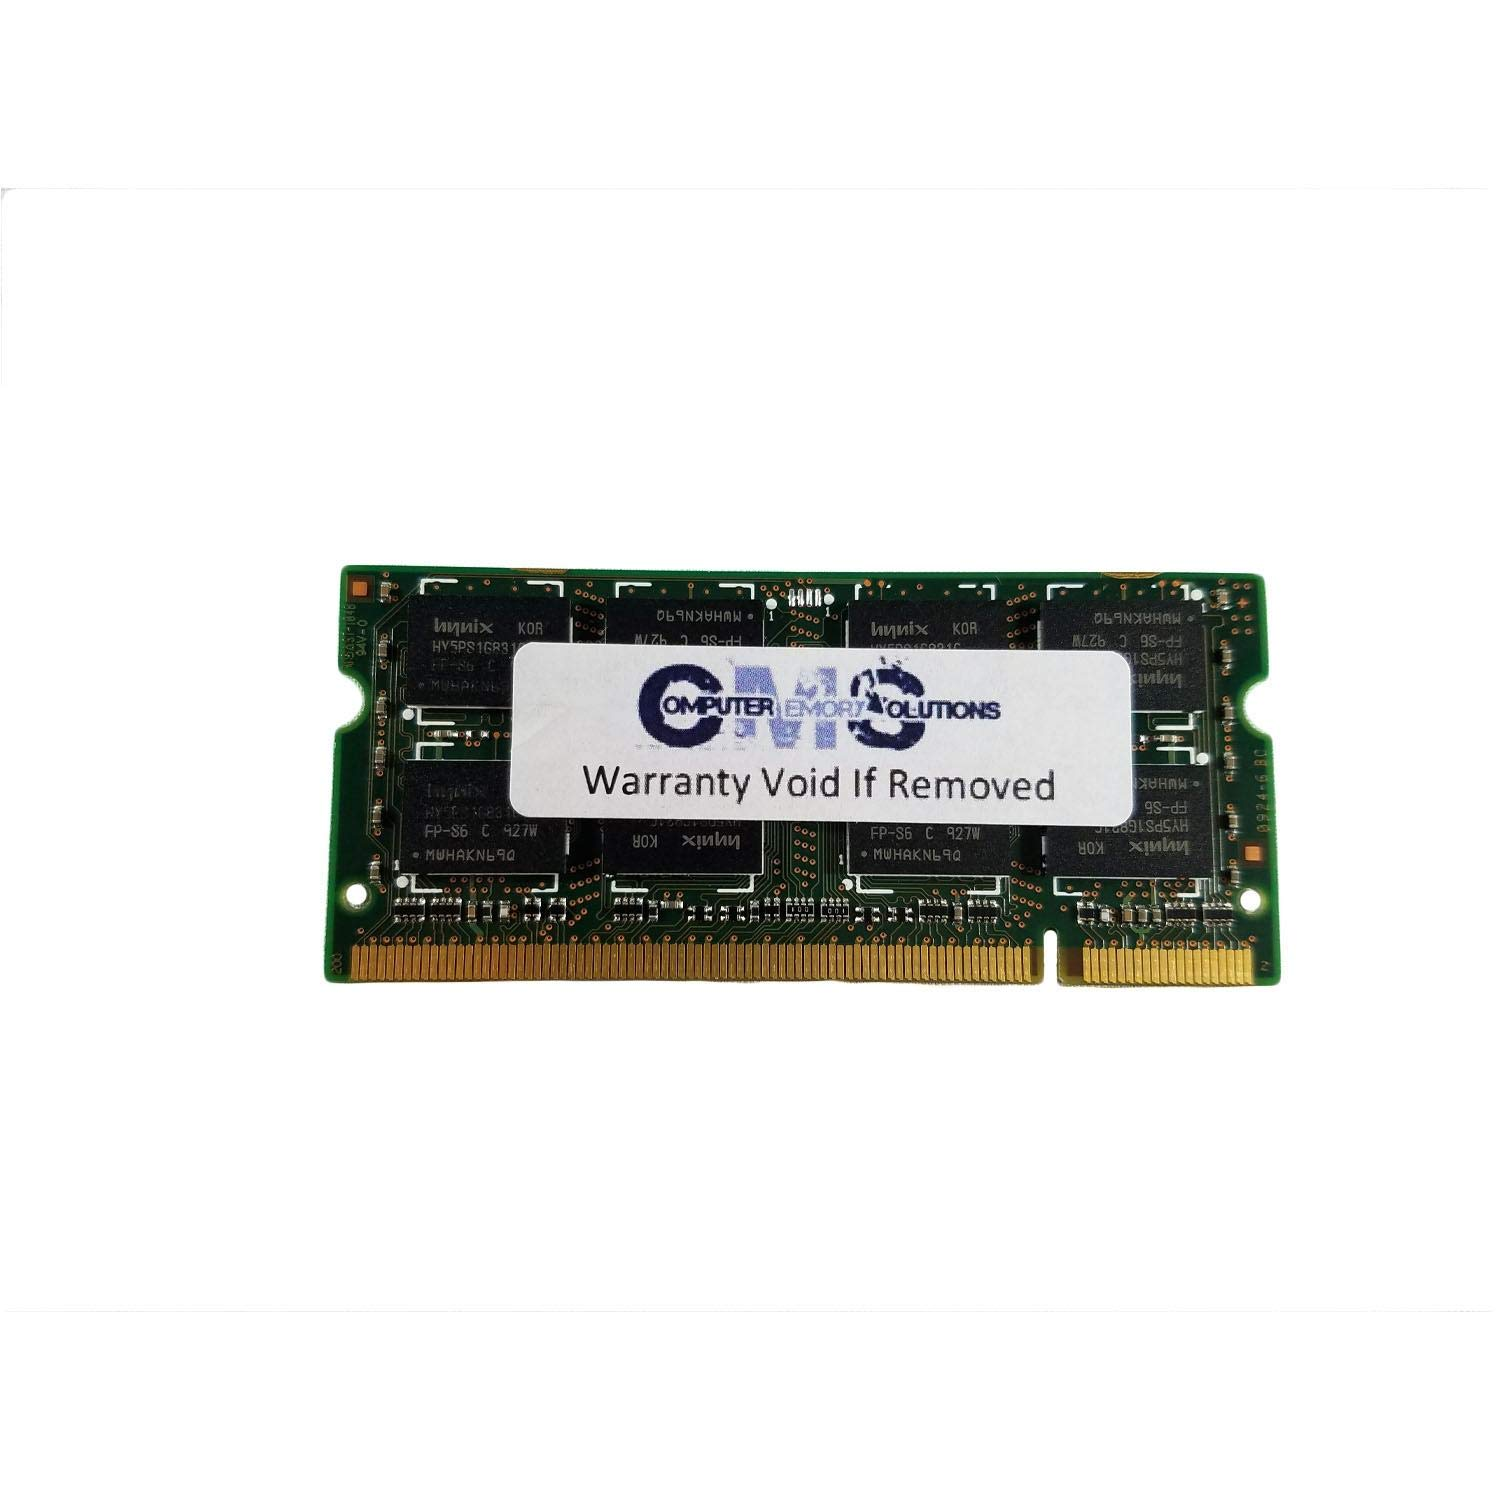 2GB Module DDR2 PC2-5300 667MHz Memory SODIMM for Acer Aspire One 532h